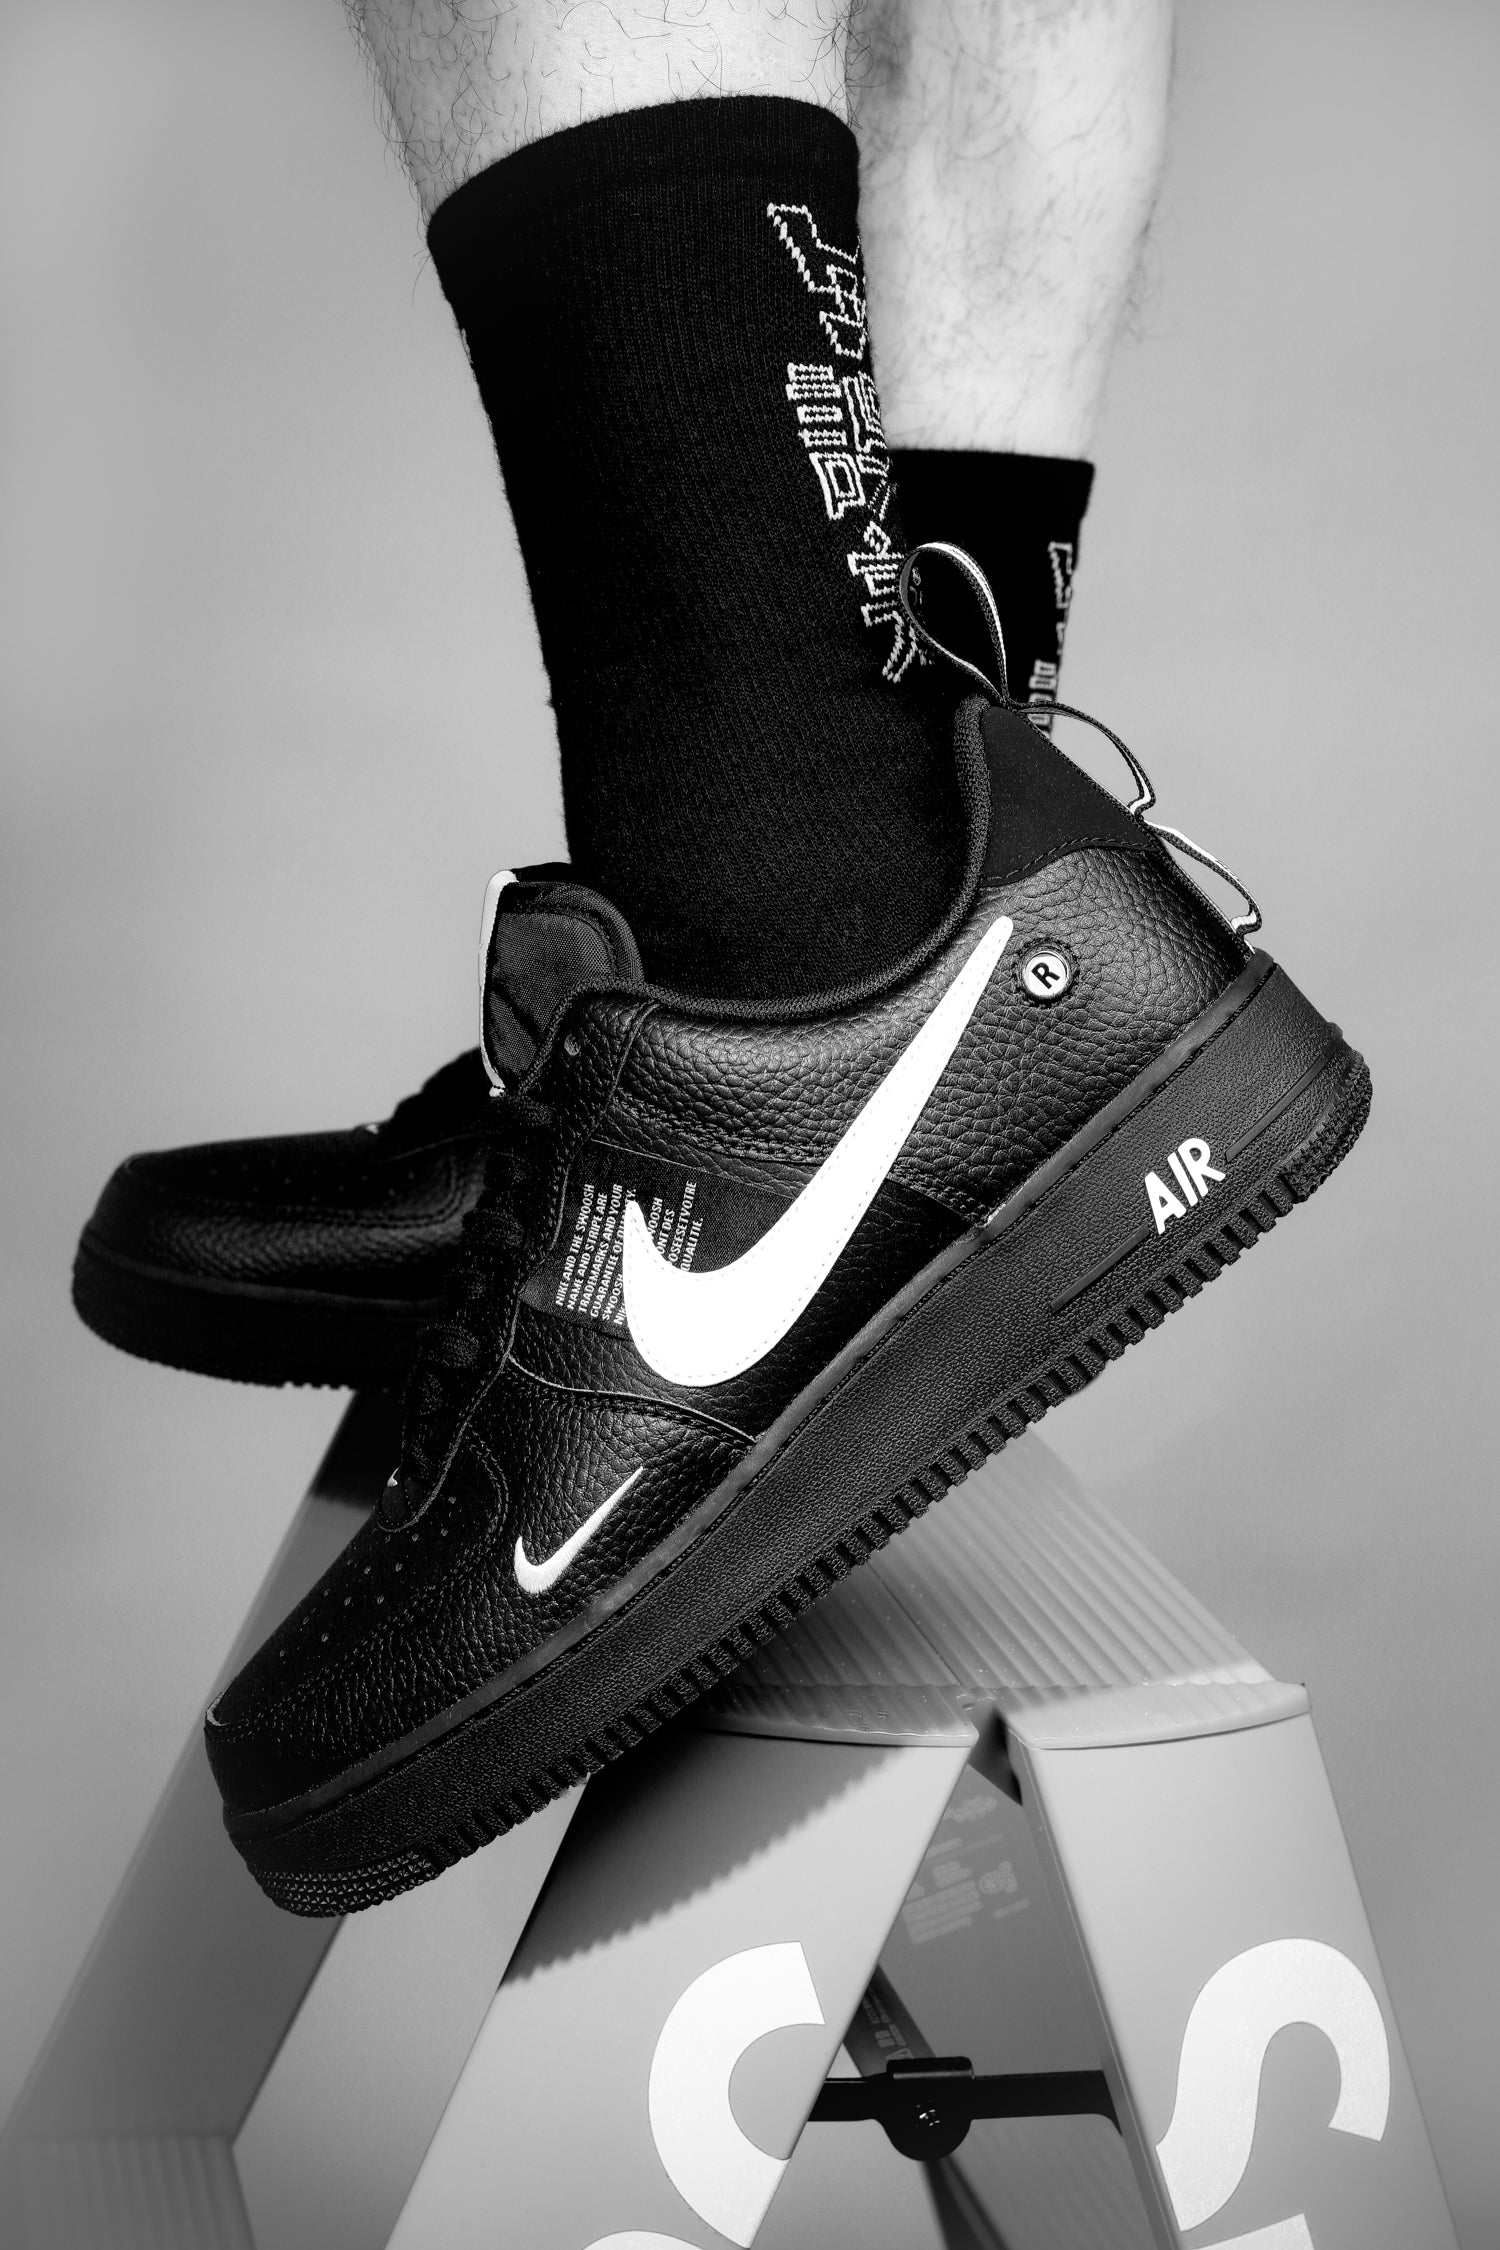 Nike Air Force 1 LV8 Utility Trainers in Black at Sarenza.eu